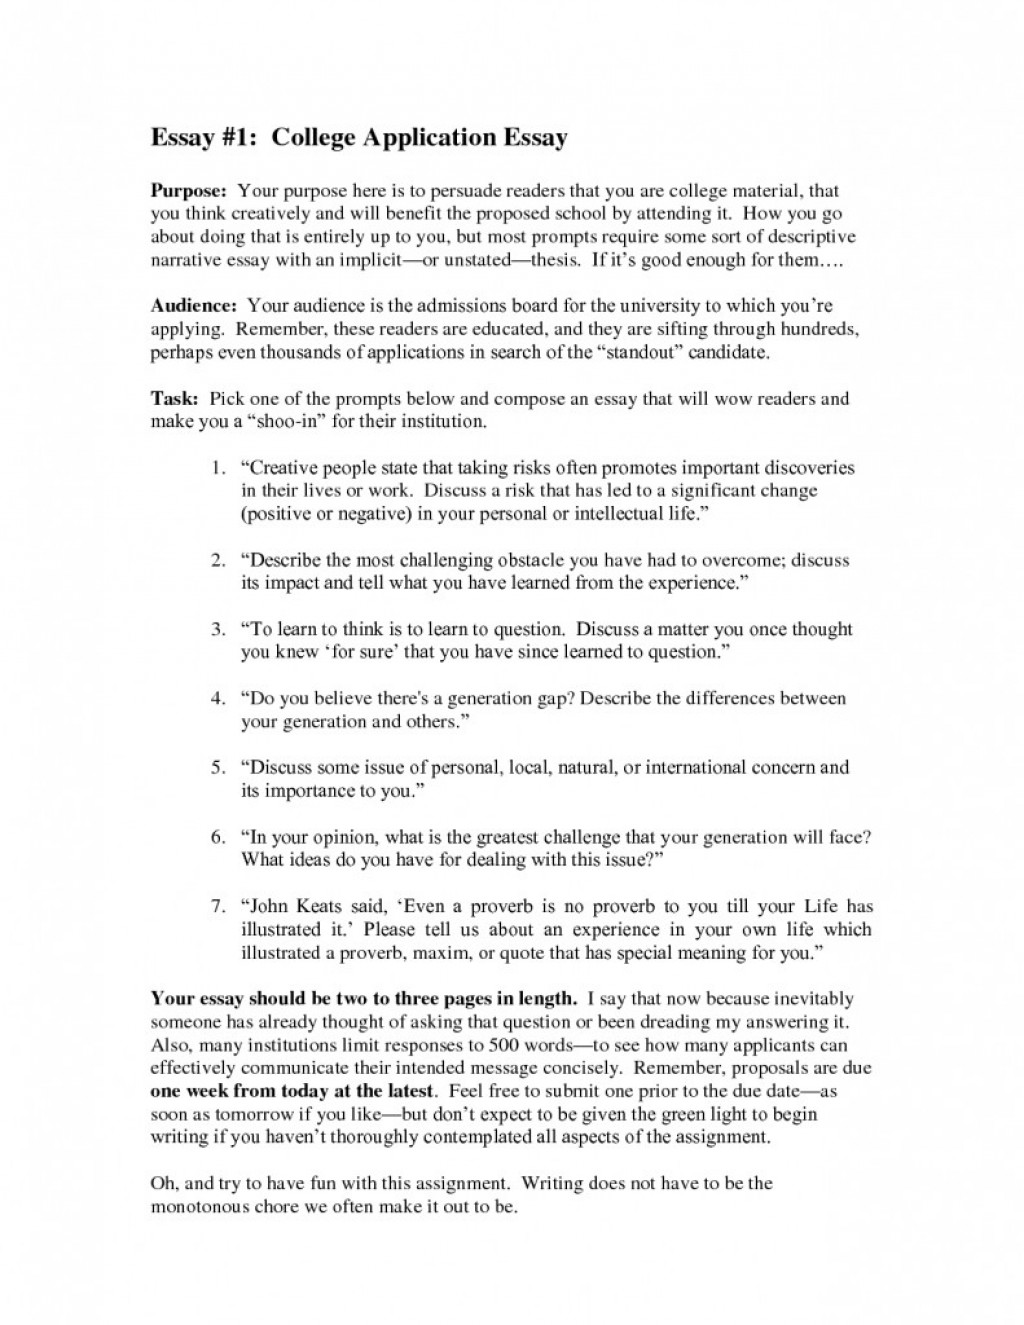 015 Essay Example College Application 791x1024 Prompts For Essays Unusual 2015 Large